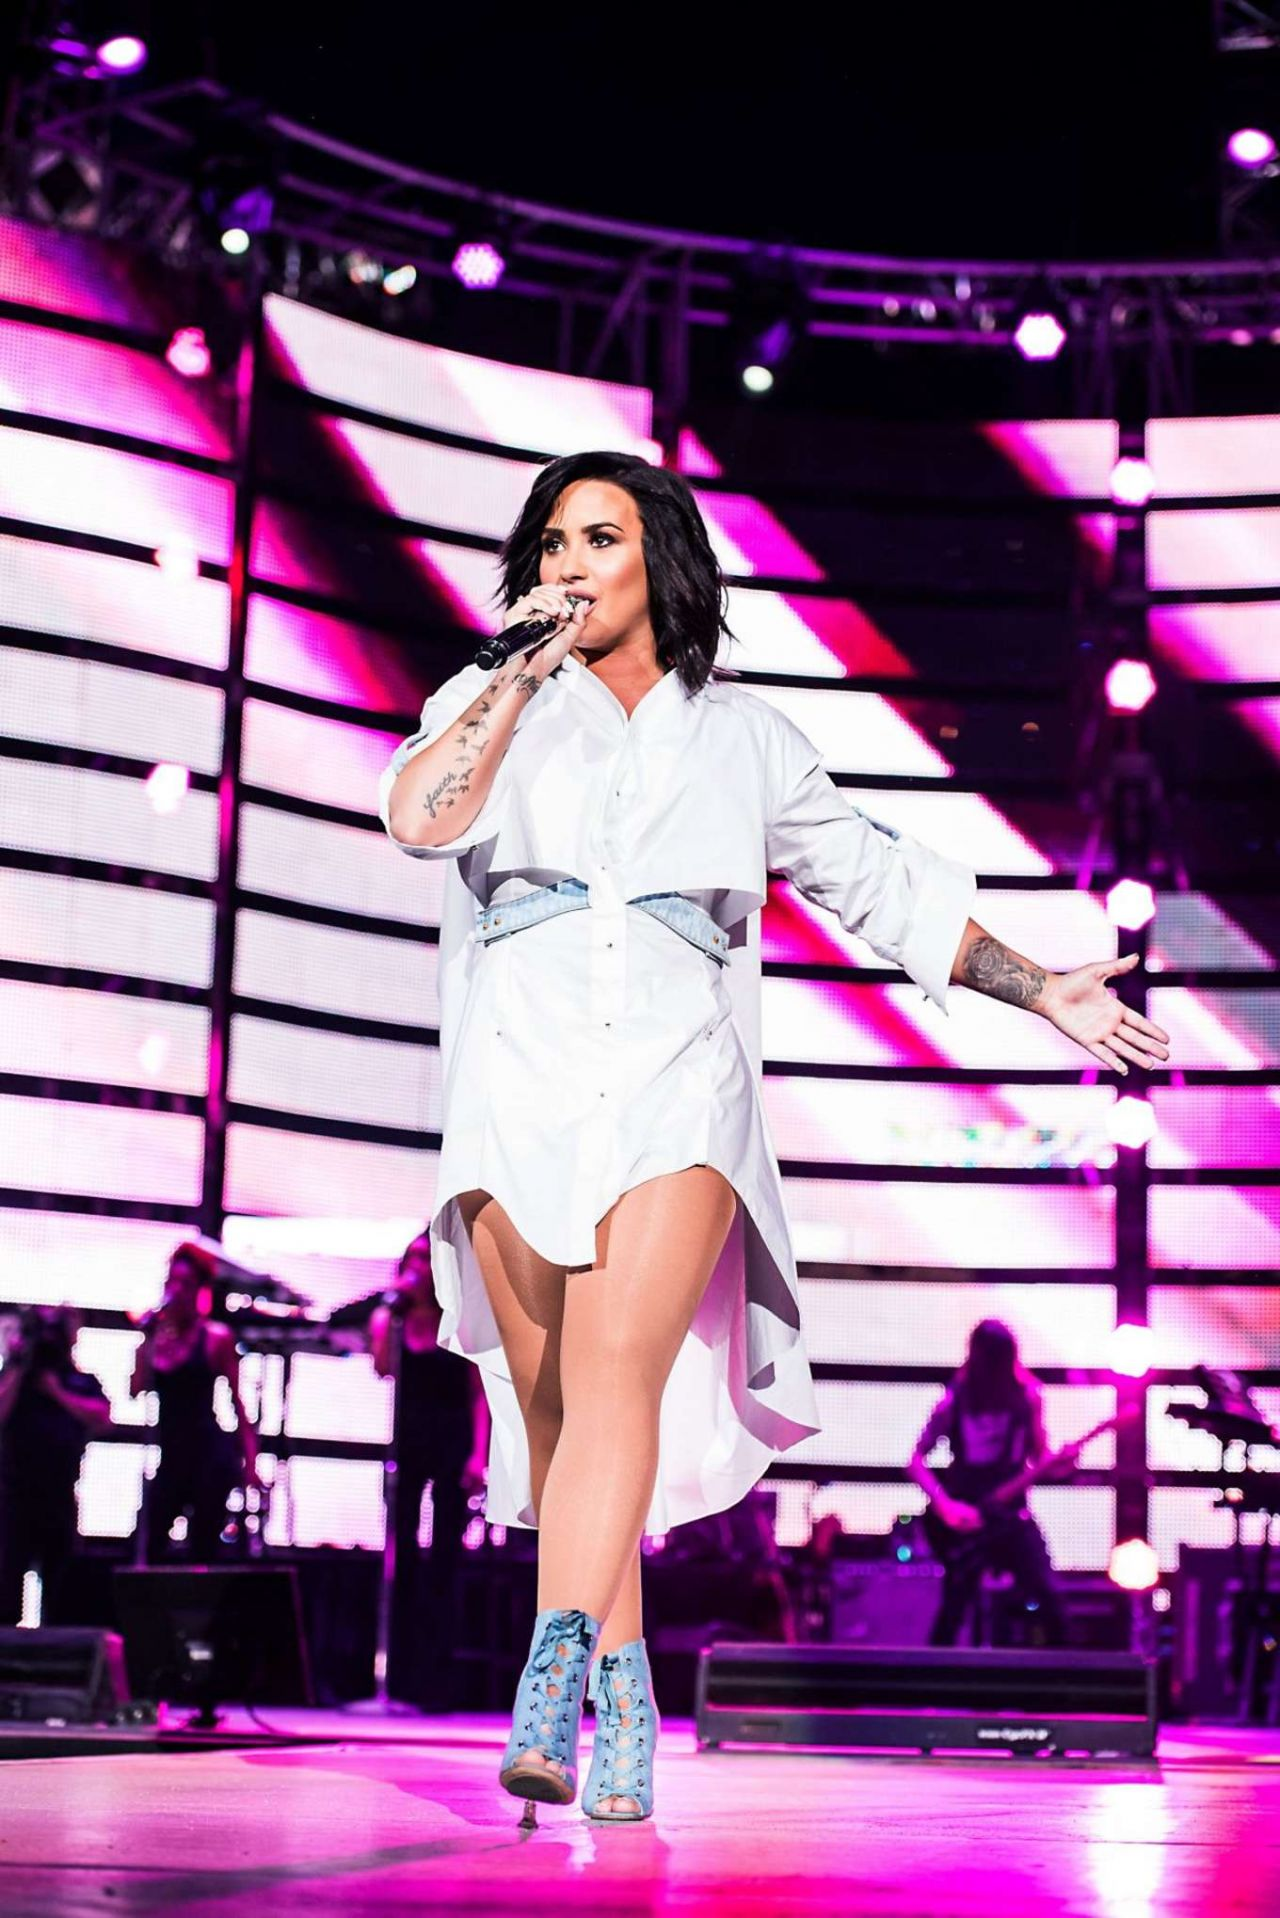 Demi Lovato - Performing at the Houston Livestock Show and Rodeo 3/14/ 2017